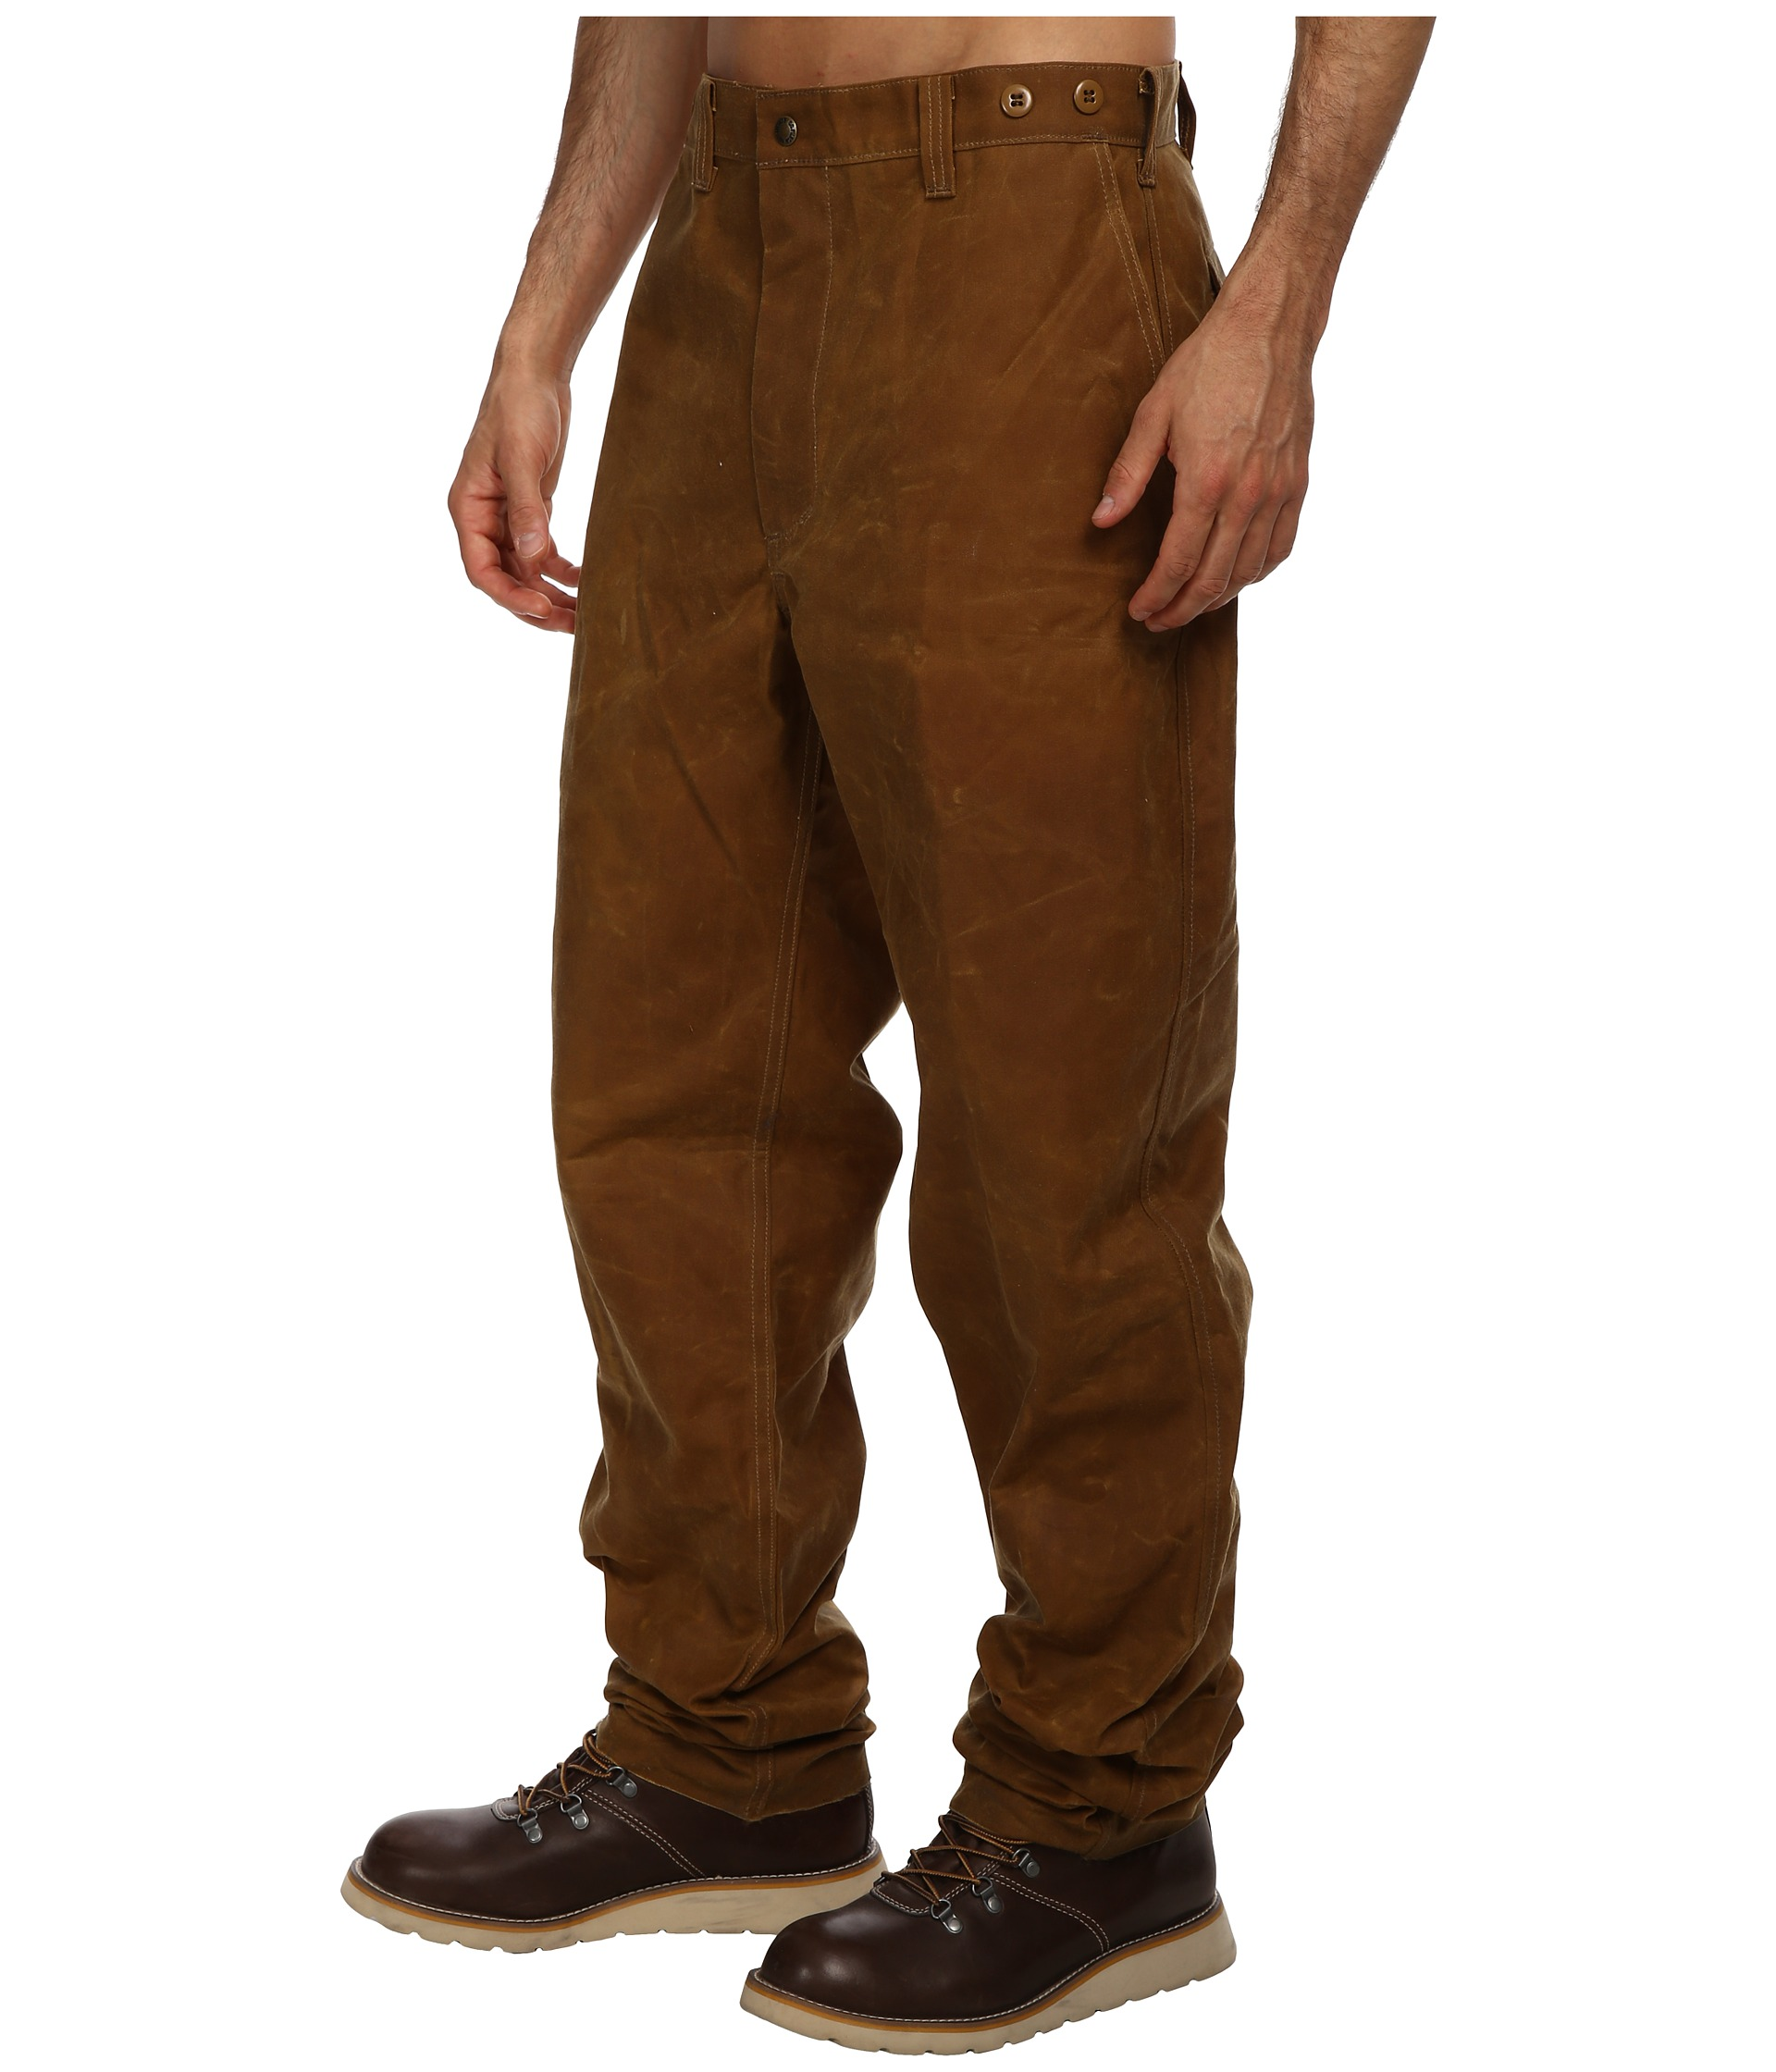 Filson dry finish single tin pants review